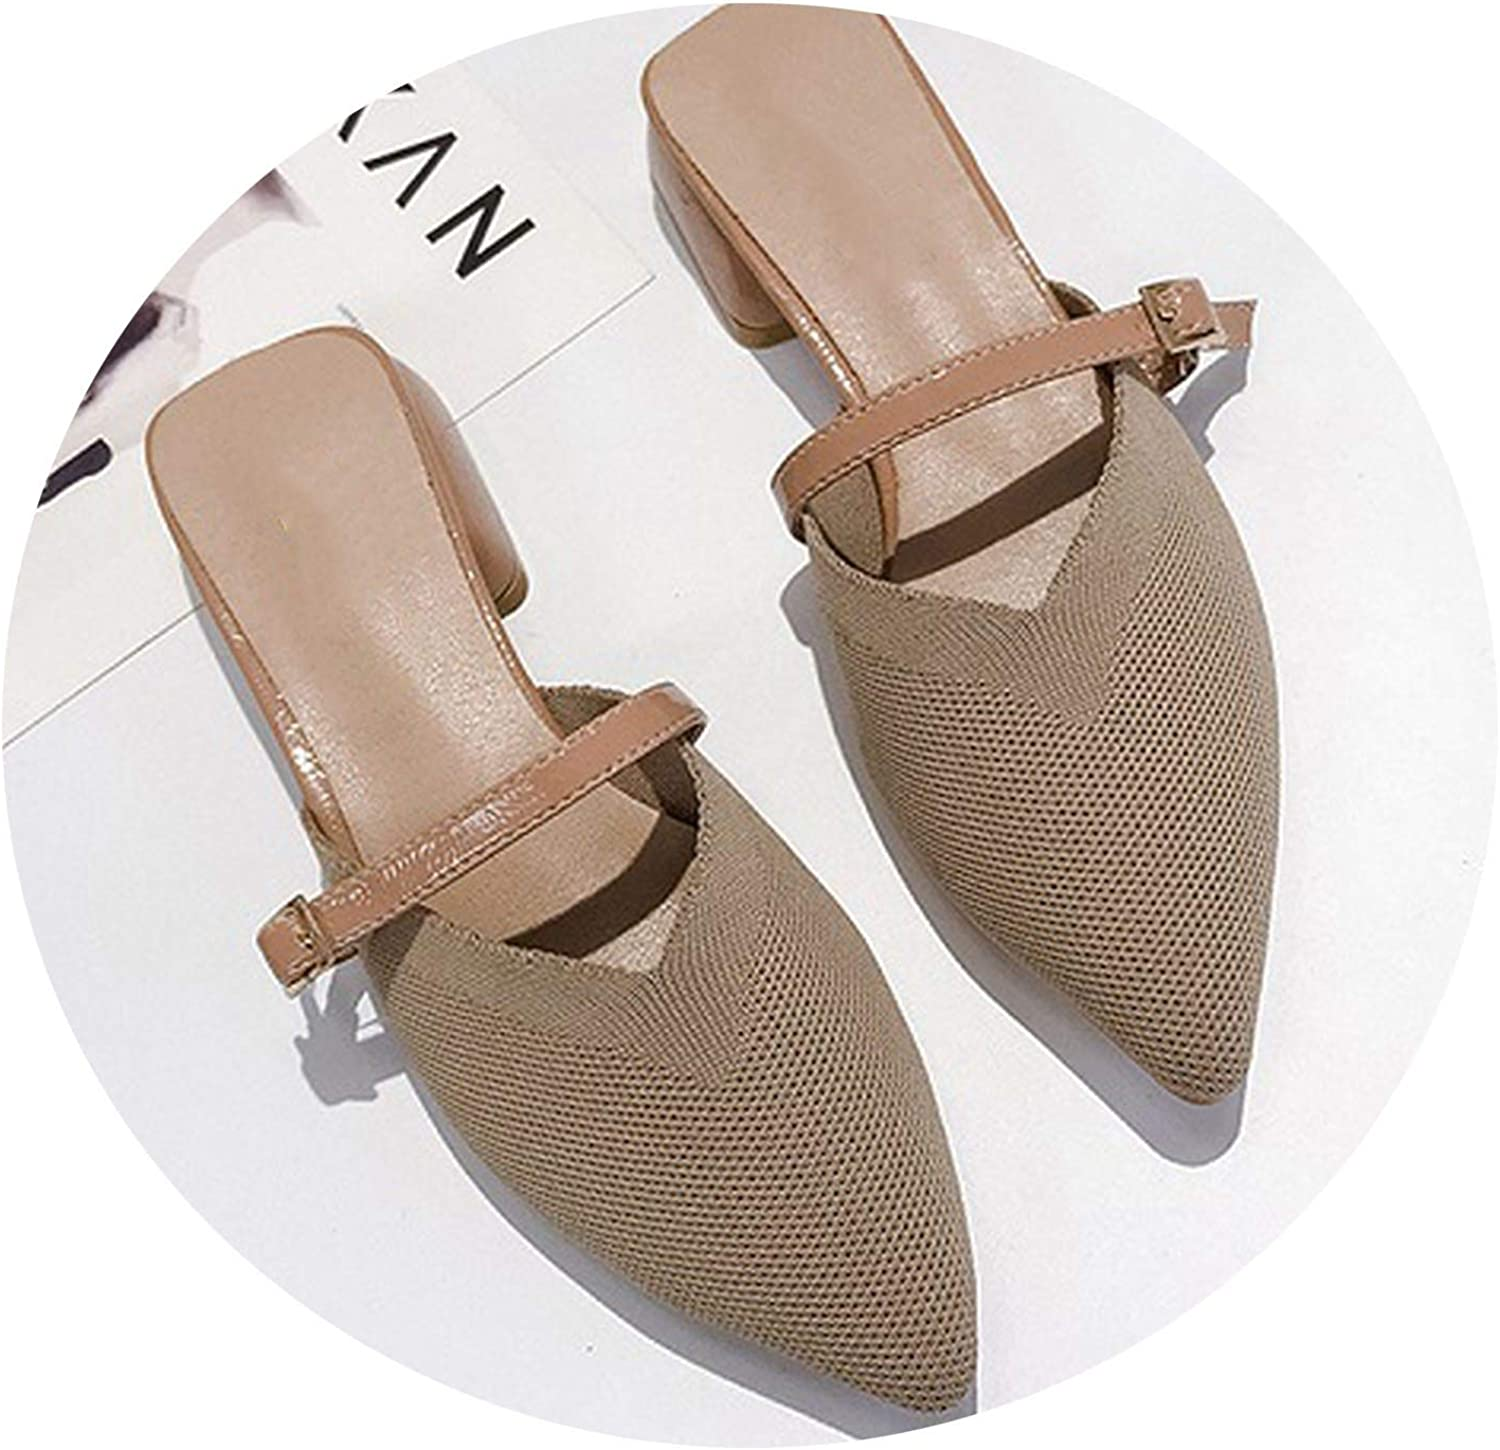 Monicas-Dream Luxury Solid color Flats Mules Slip On Lady Slippers Mesh Strap Pointed Toe Women Mules Outdoor Slipper shoes Woman Slides